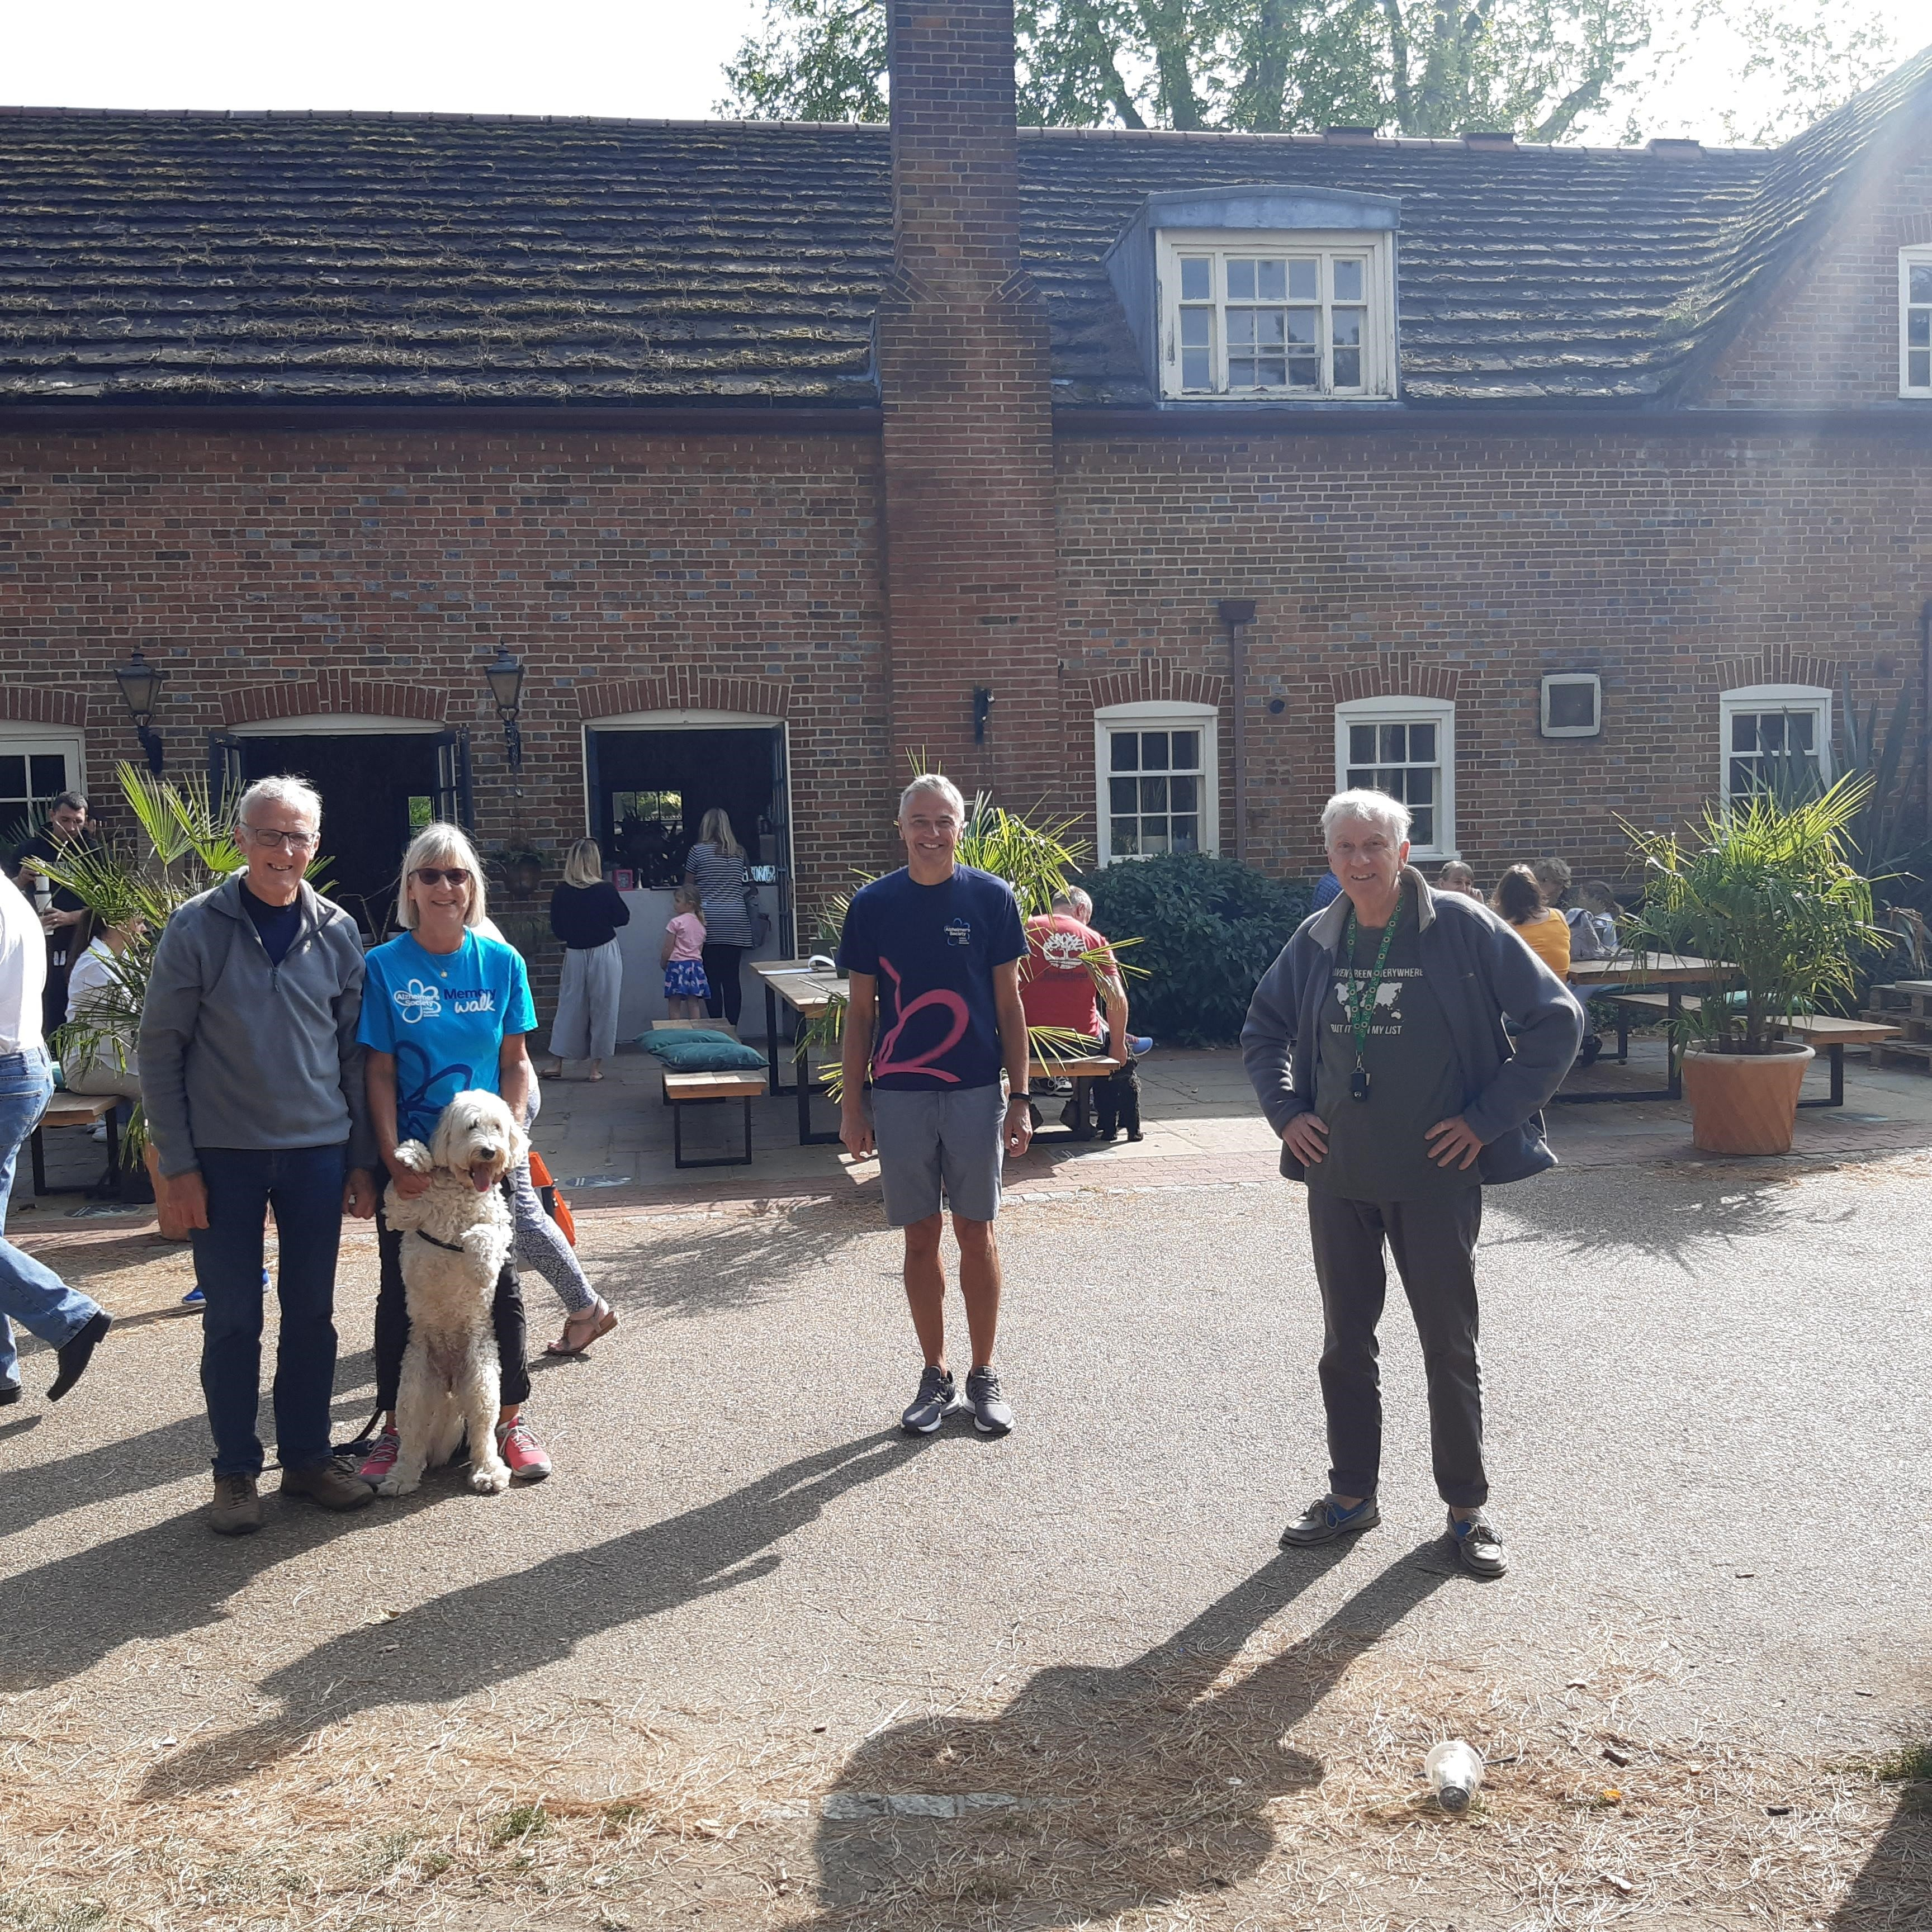 Tim stands outside a building in a courtyard flanked by two memory walkers with a dog and another man to his right.